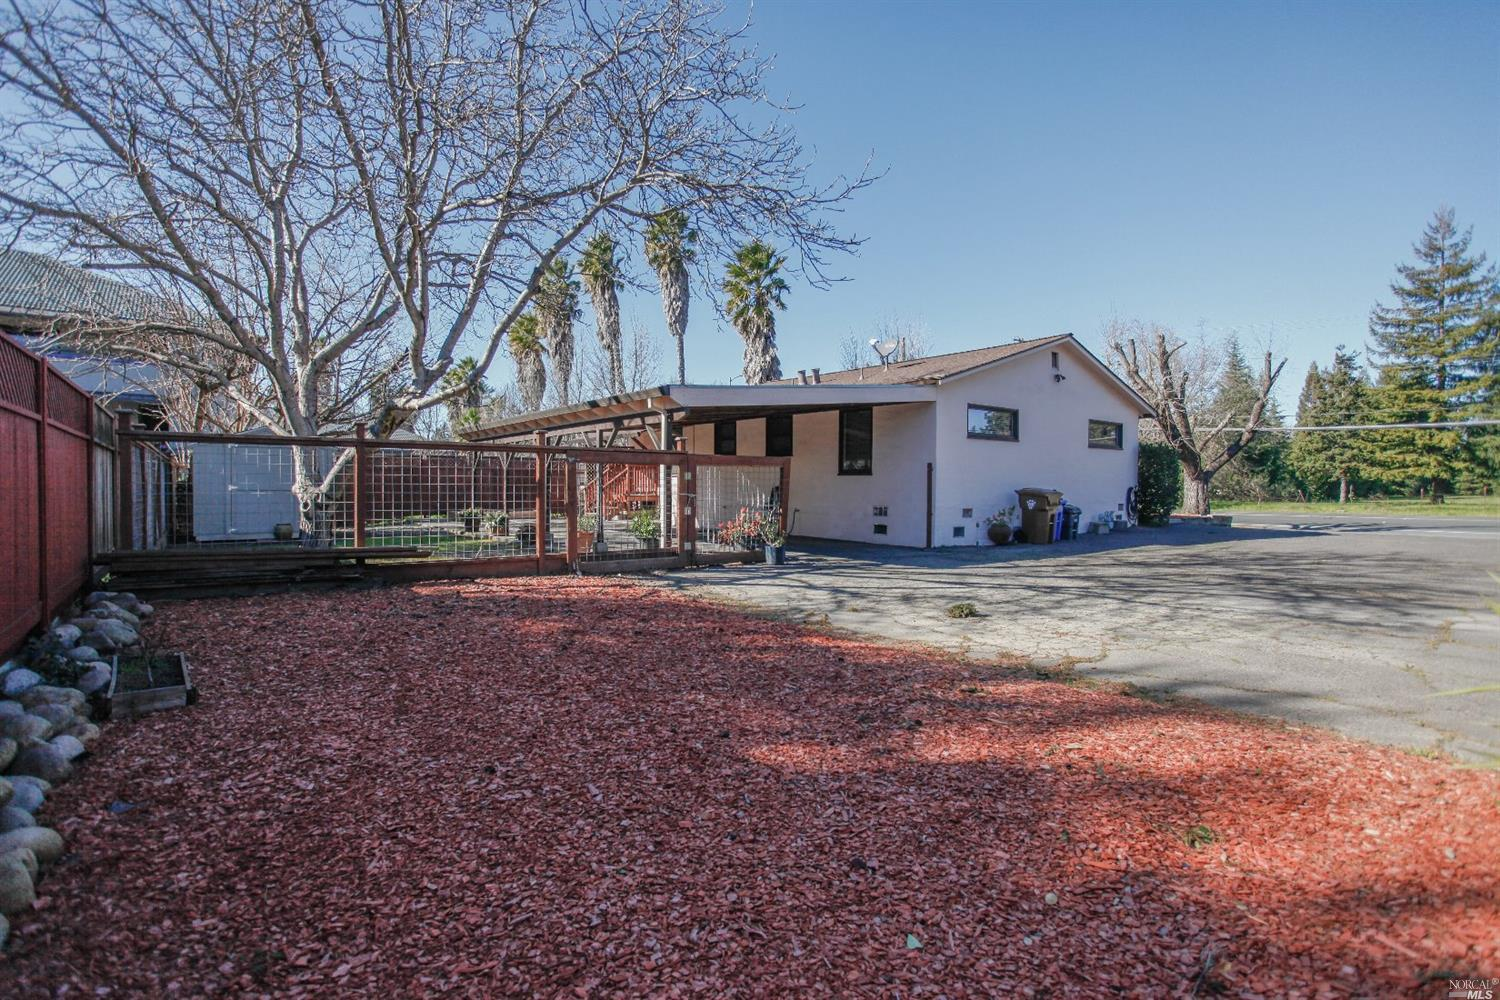 Mid-century home near Downtown with extensive upgrades completed in 2005. Newer roof (2016), tankless water heater (2018), and beautiful landscaping. Currently used as a residence. Zoning is Community Commercial which allows for a wide variety of uses. Some improvements may be required depending on use. Best to check with City Planning.  Also listed as MLS#22002357 in the commercial category.